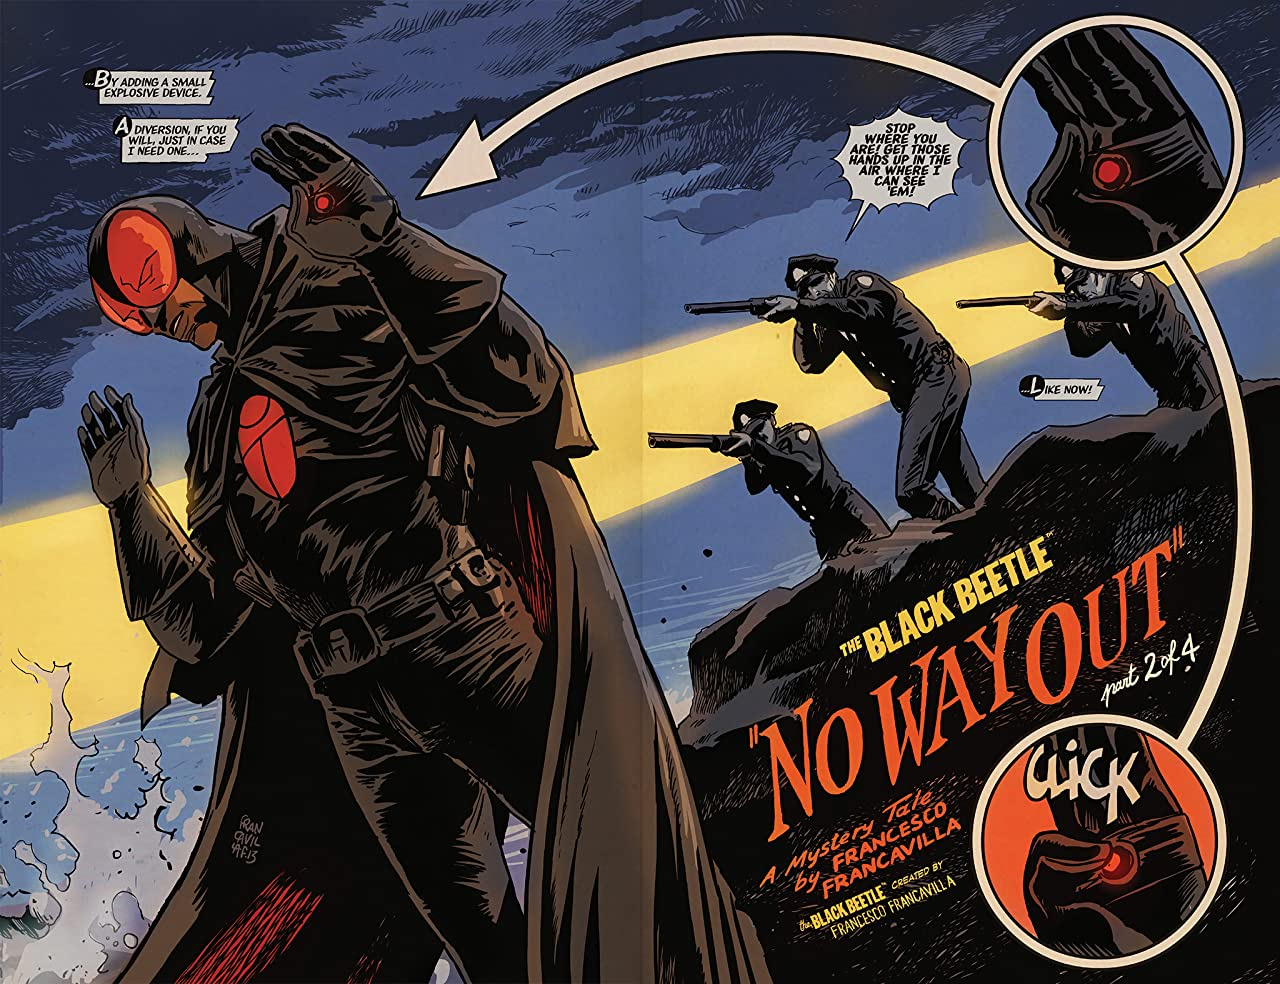 The Black Beetle: No Way Out #2